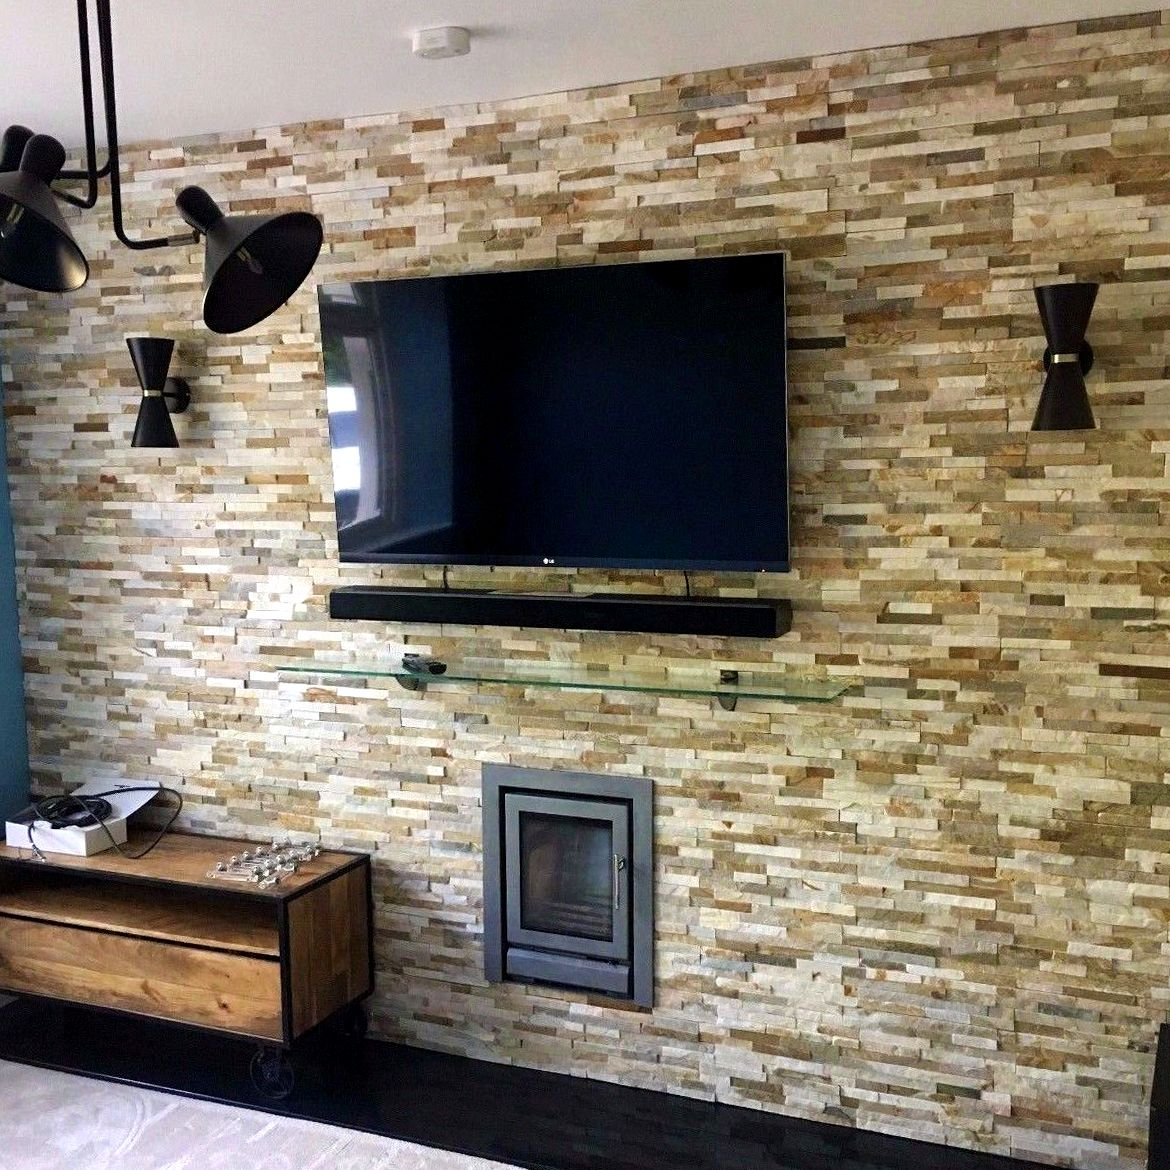 Living Room Translate To Indo: Refresh Your Living Room With Cladding! This Stone